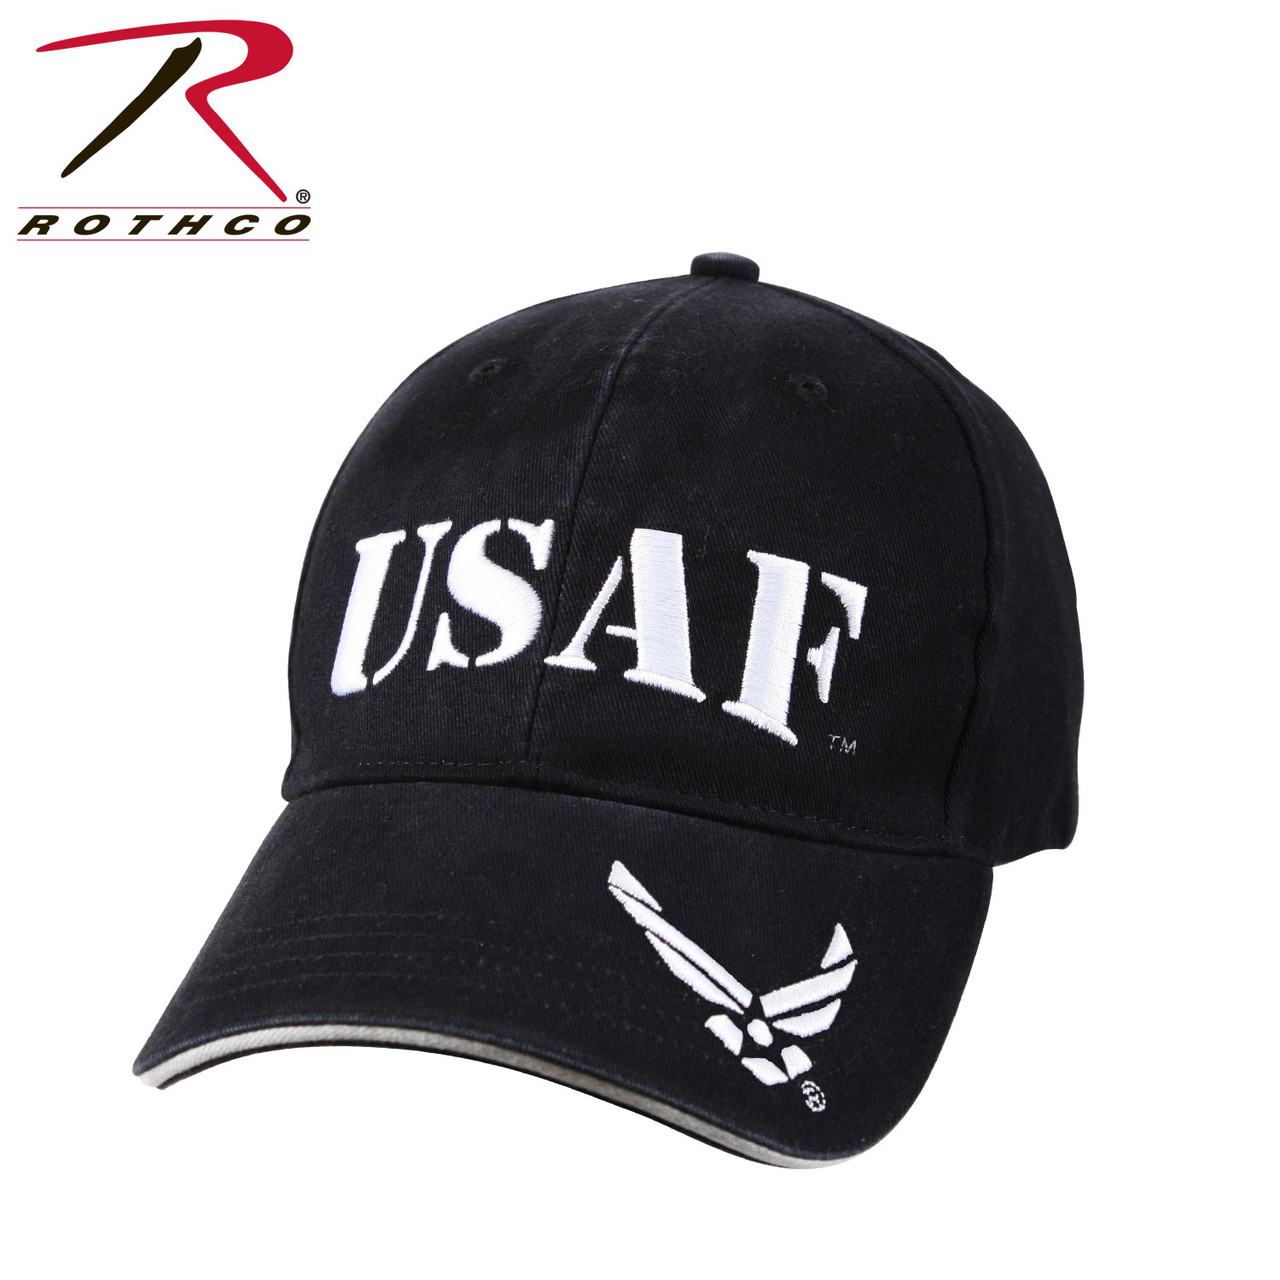 a6c9ae07fd5ed Rothco USAF Cap Embroidered Low Profile Cotton (Item #9886) - Washed Navy  Blue - USMILITARYHATS.COM